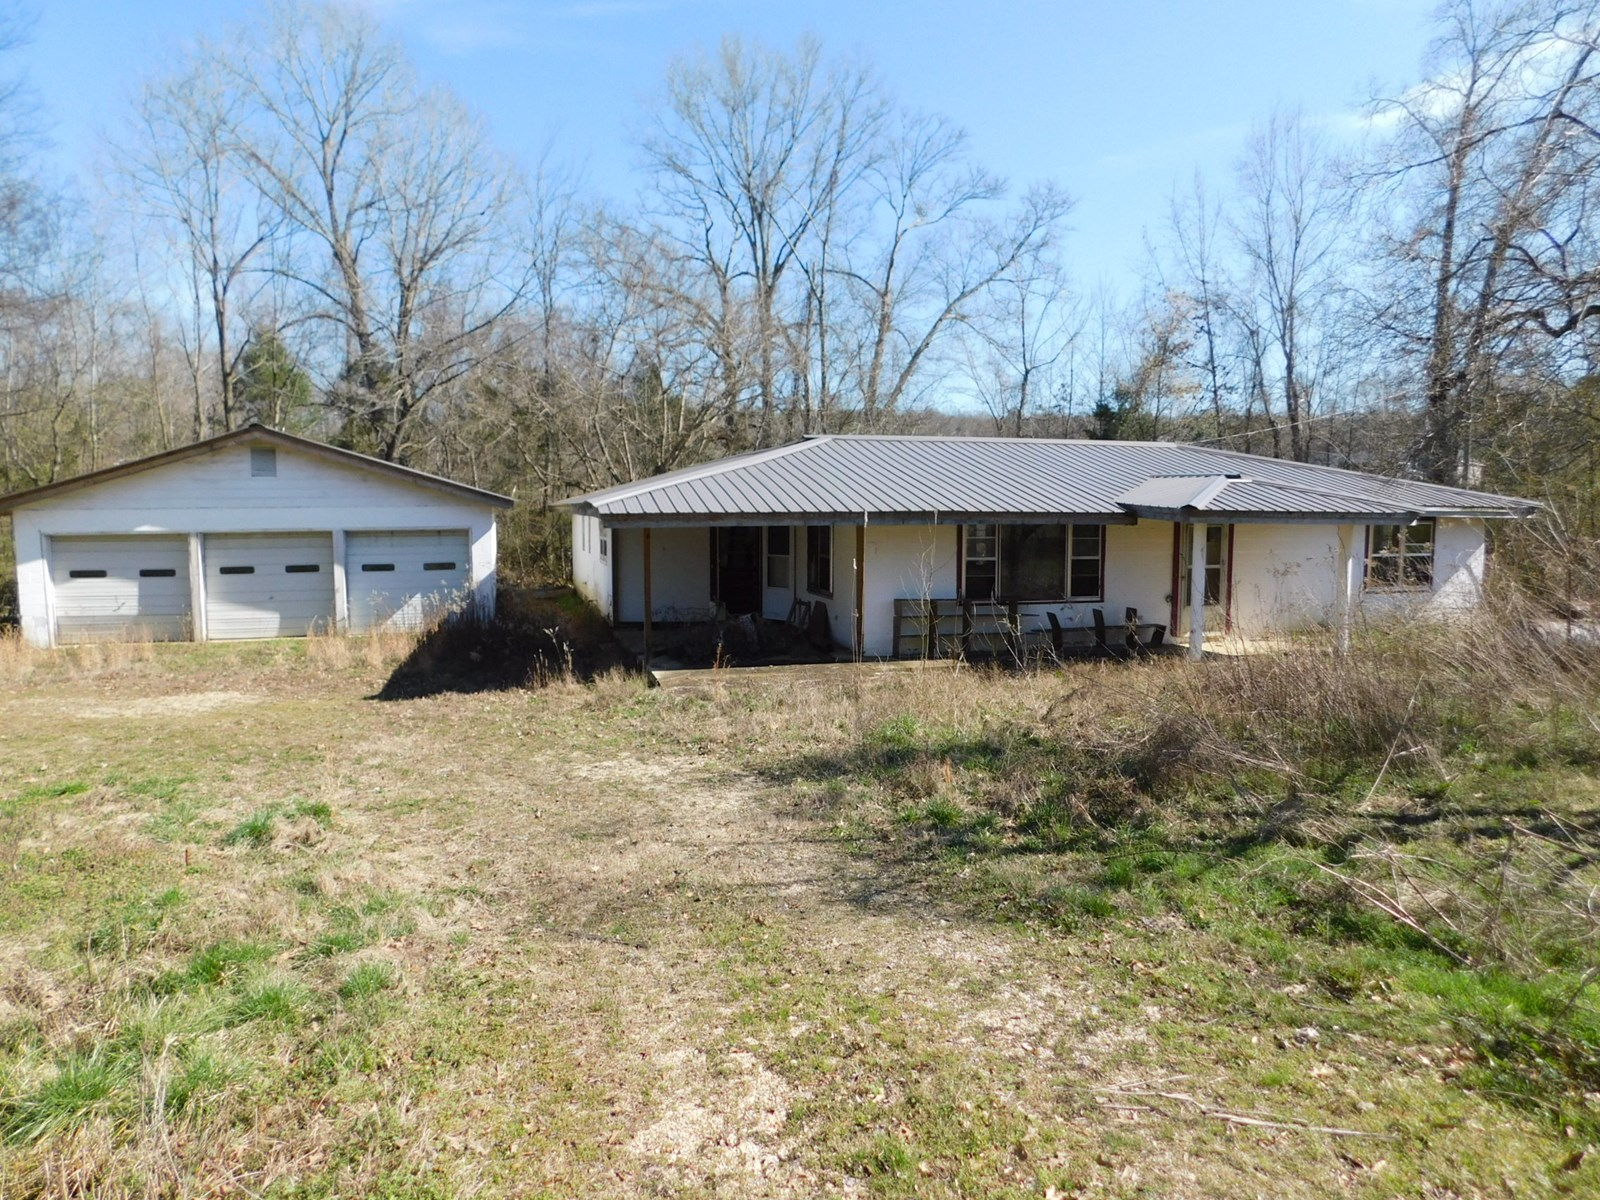 FIXER UPPER HOUSE FOR SALE IN TN, CREEK, GARAGE